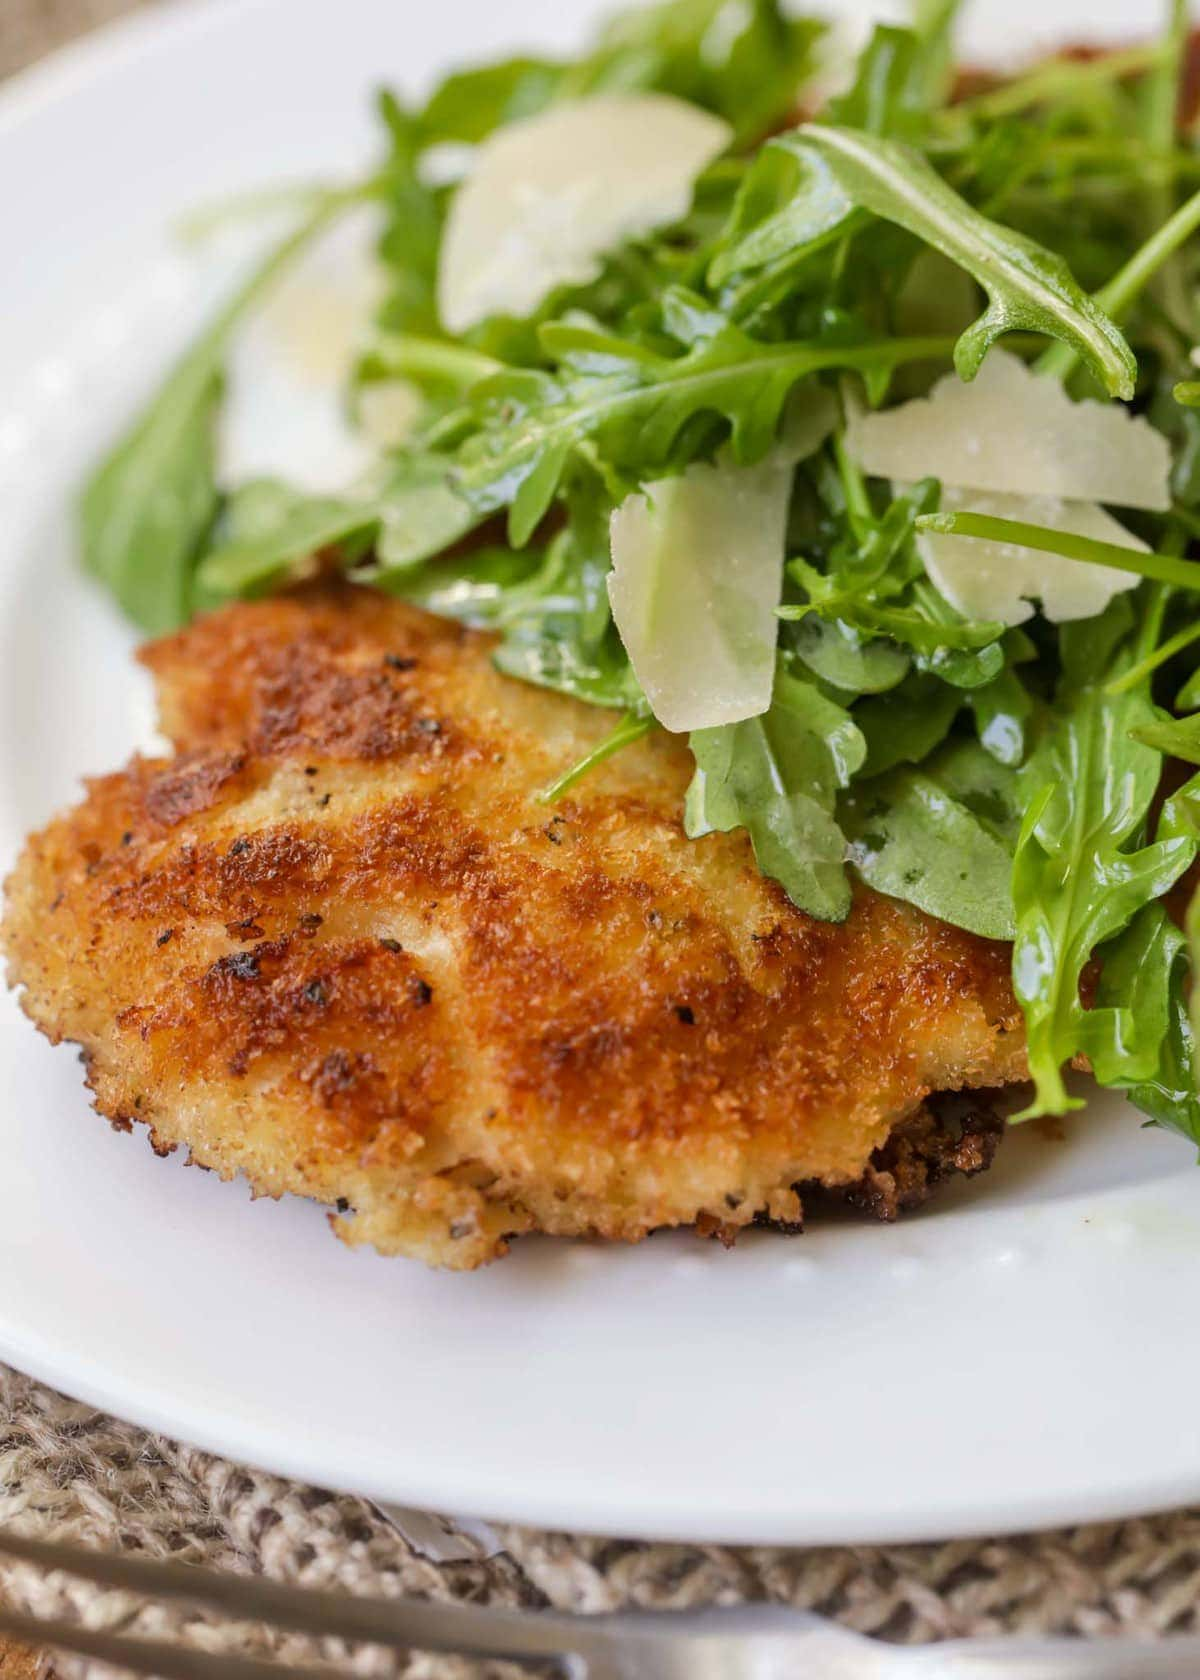 Crispy Fried Chicken Chicken Topped With Arugula Lil Luna